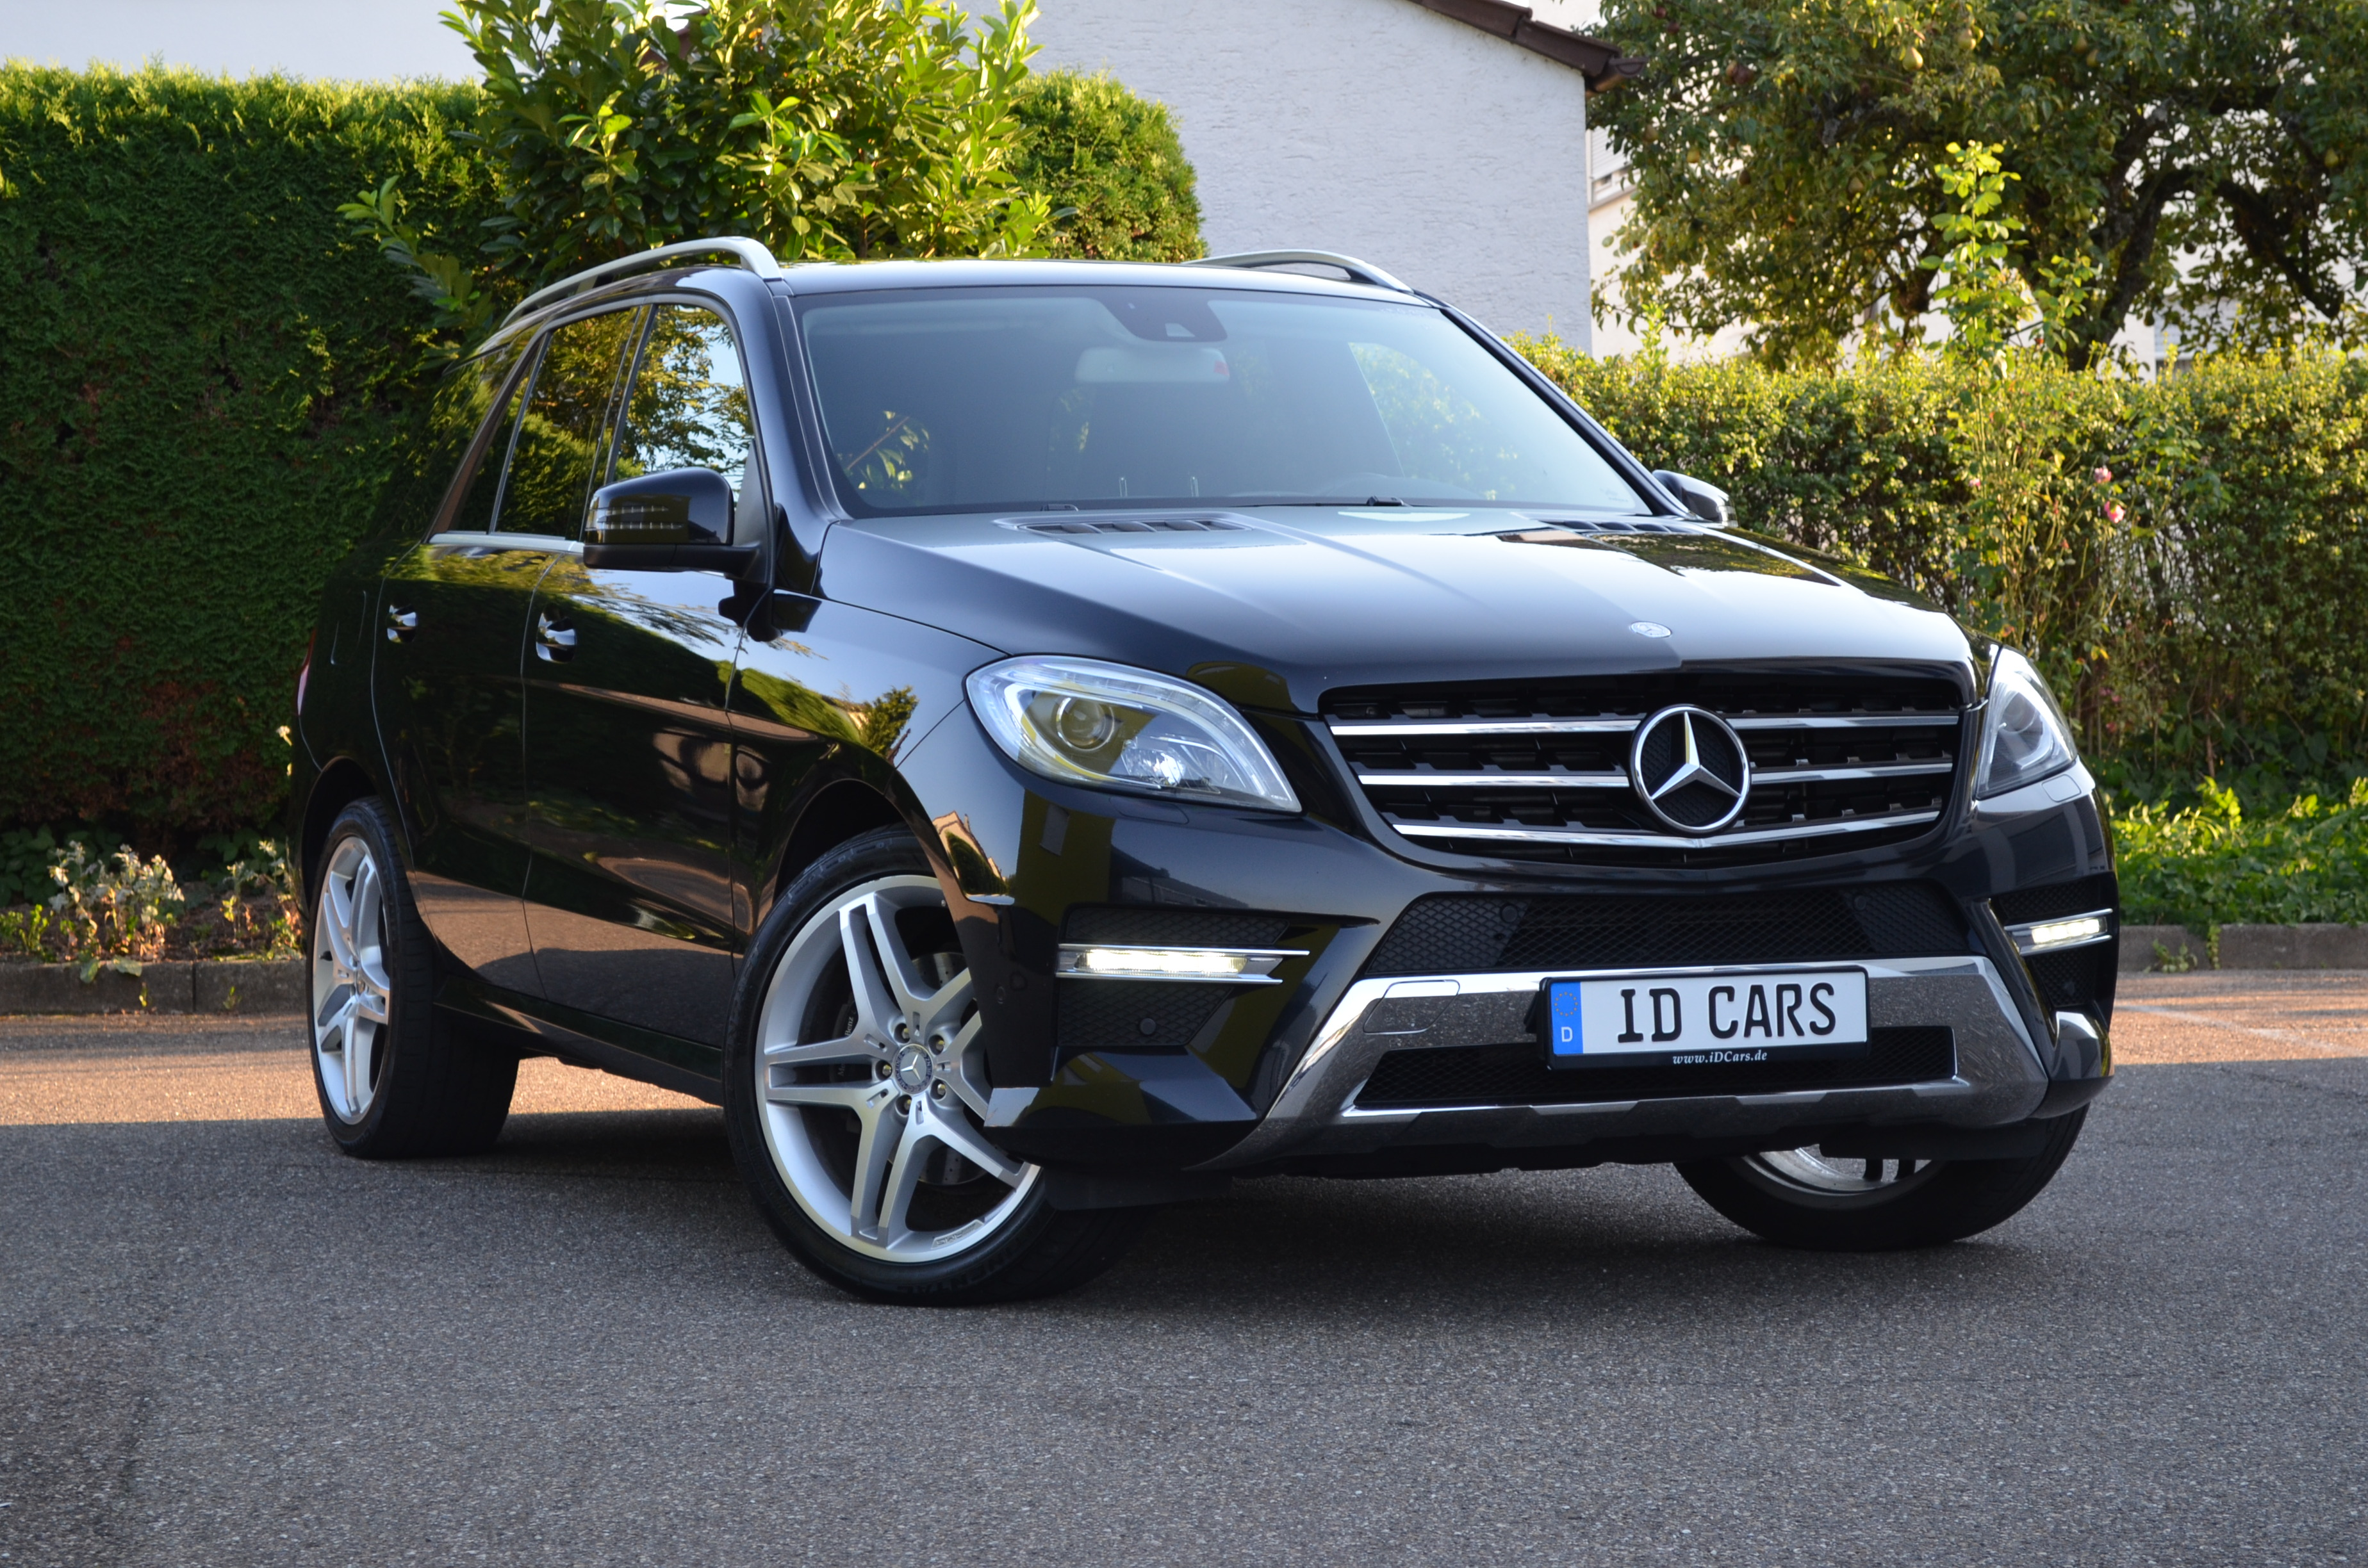 2012 mercedes benz m klasse ml 350 cdi bluetec amg panorama anghel toader gbr. Black Bedroom Furniture Sets. Home Design Ideas